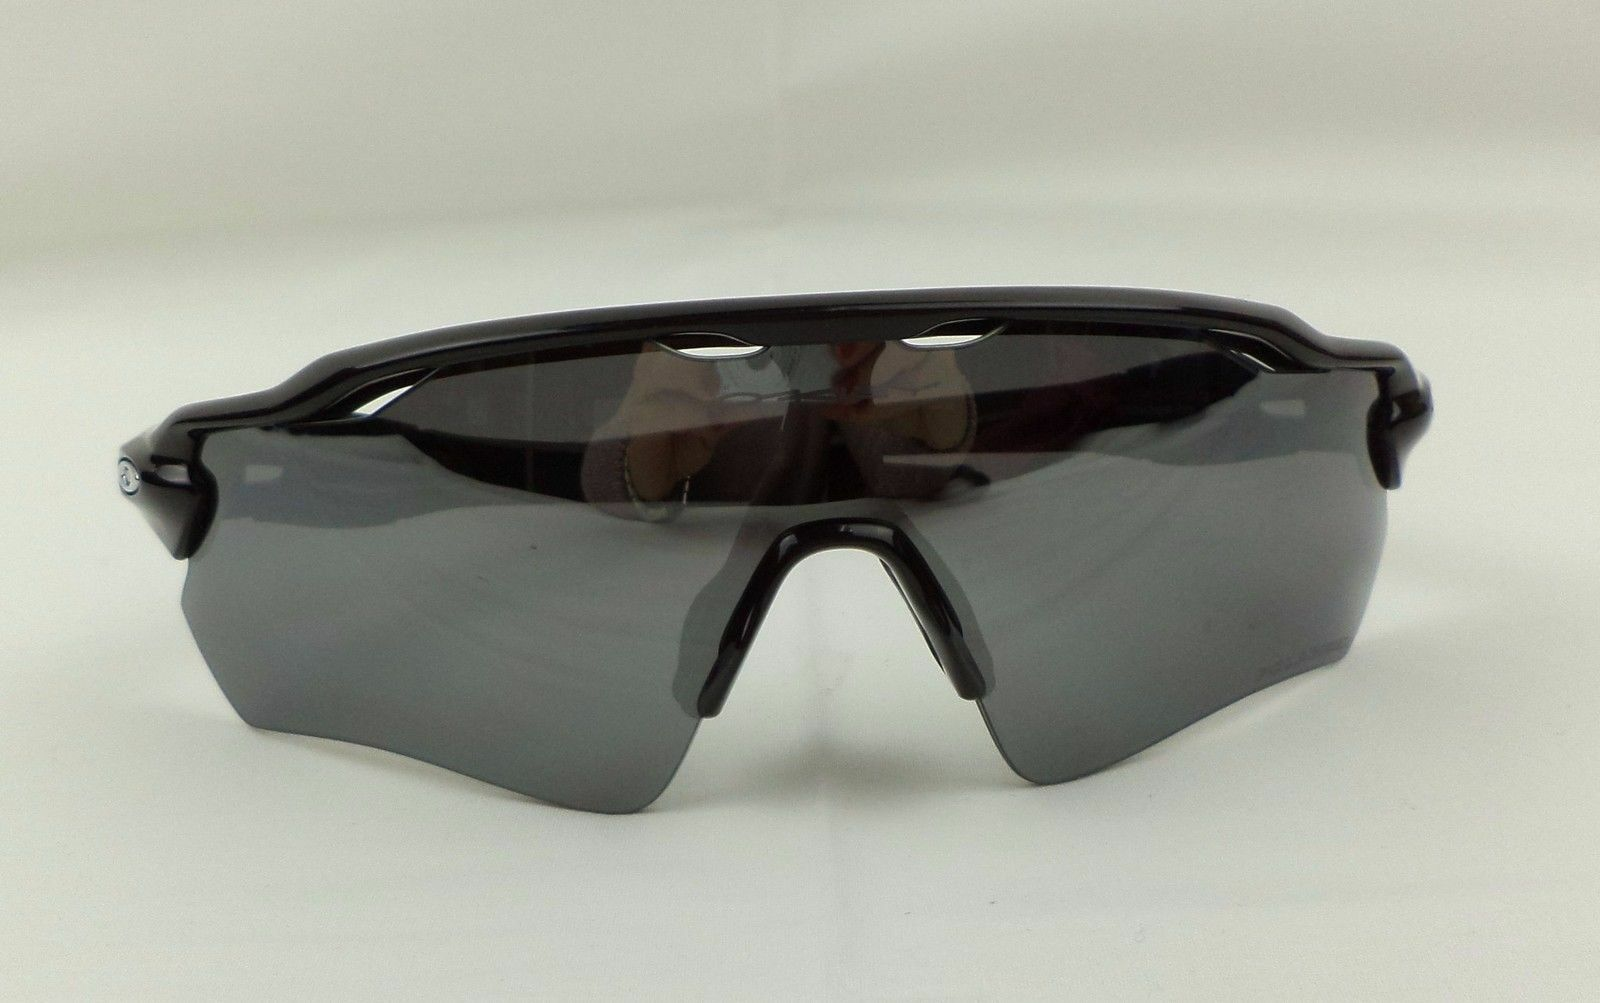 57ffe1cd4eb Oakley Radar EV Path Sunglasses Black  black Iridium Polarized Lens ...